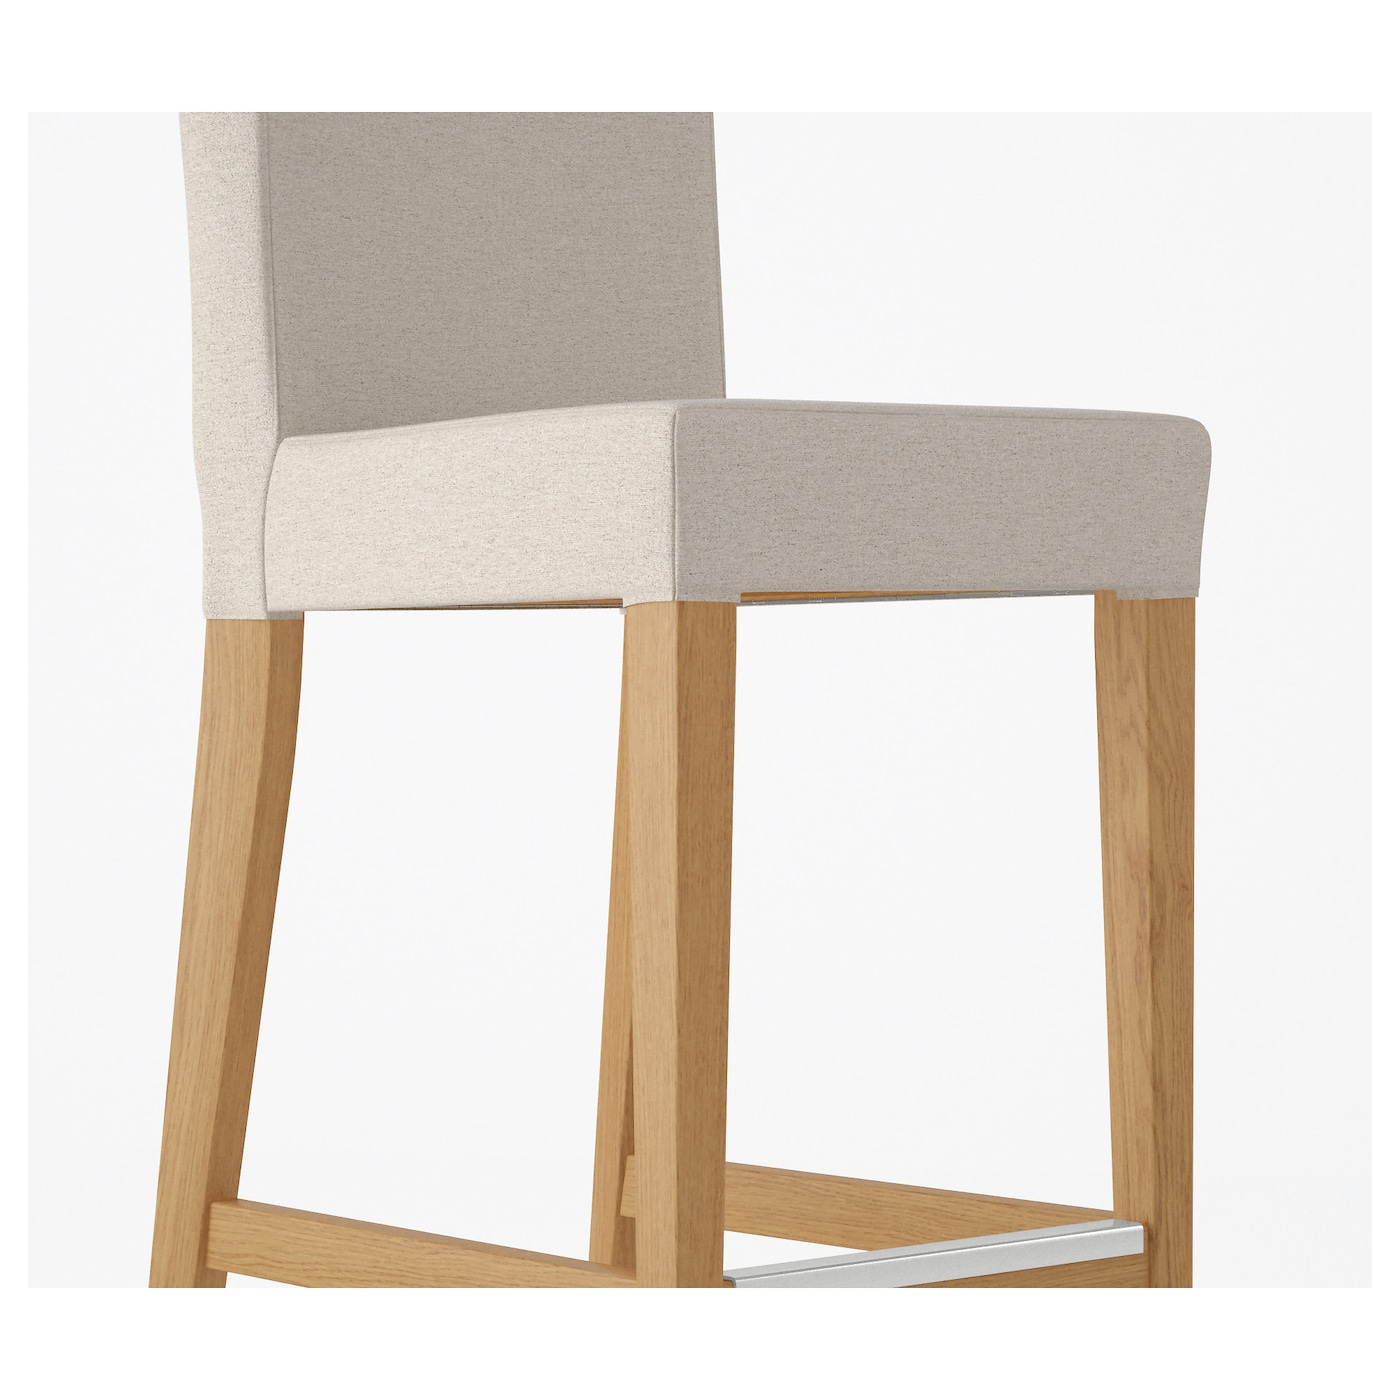 #7B4E28 IKEA HENRIKSDAL Bar Stool With Backrest The Padded Seat Means You Sit  with 2000x2000 px of Most Effective Ikea Oak Chairs 20002000 wallpaper @ avoidforclosure.info